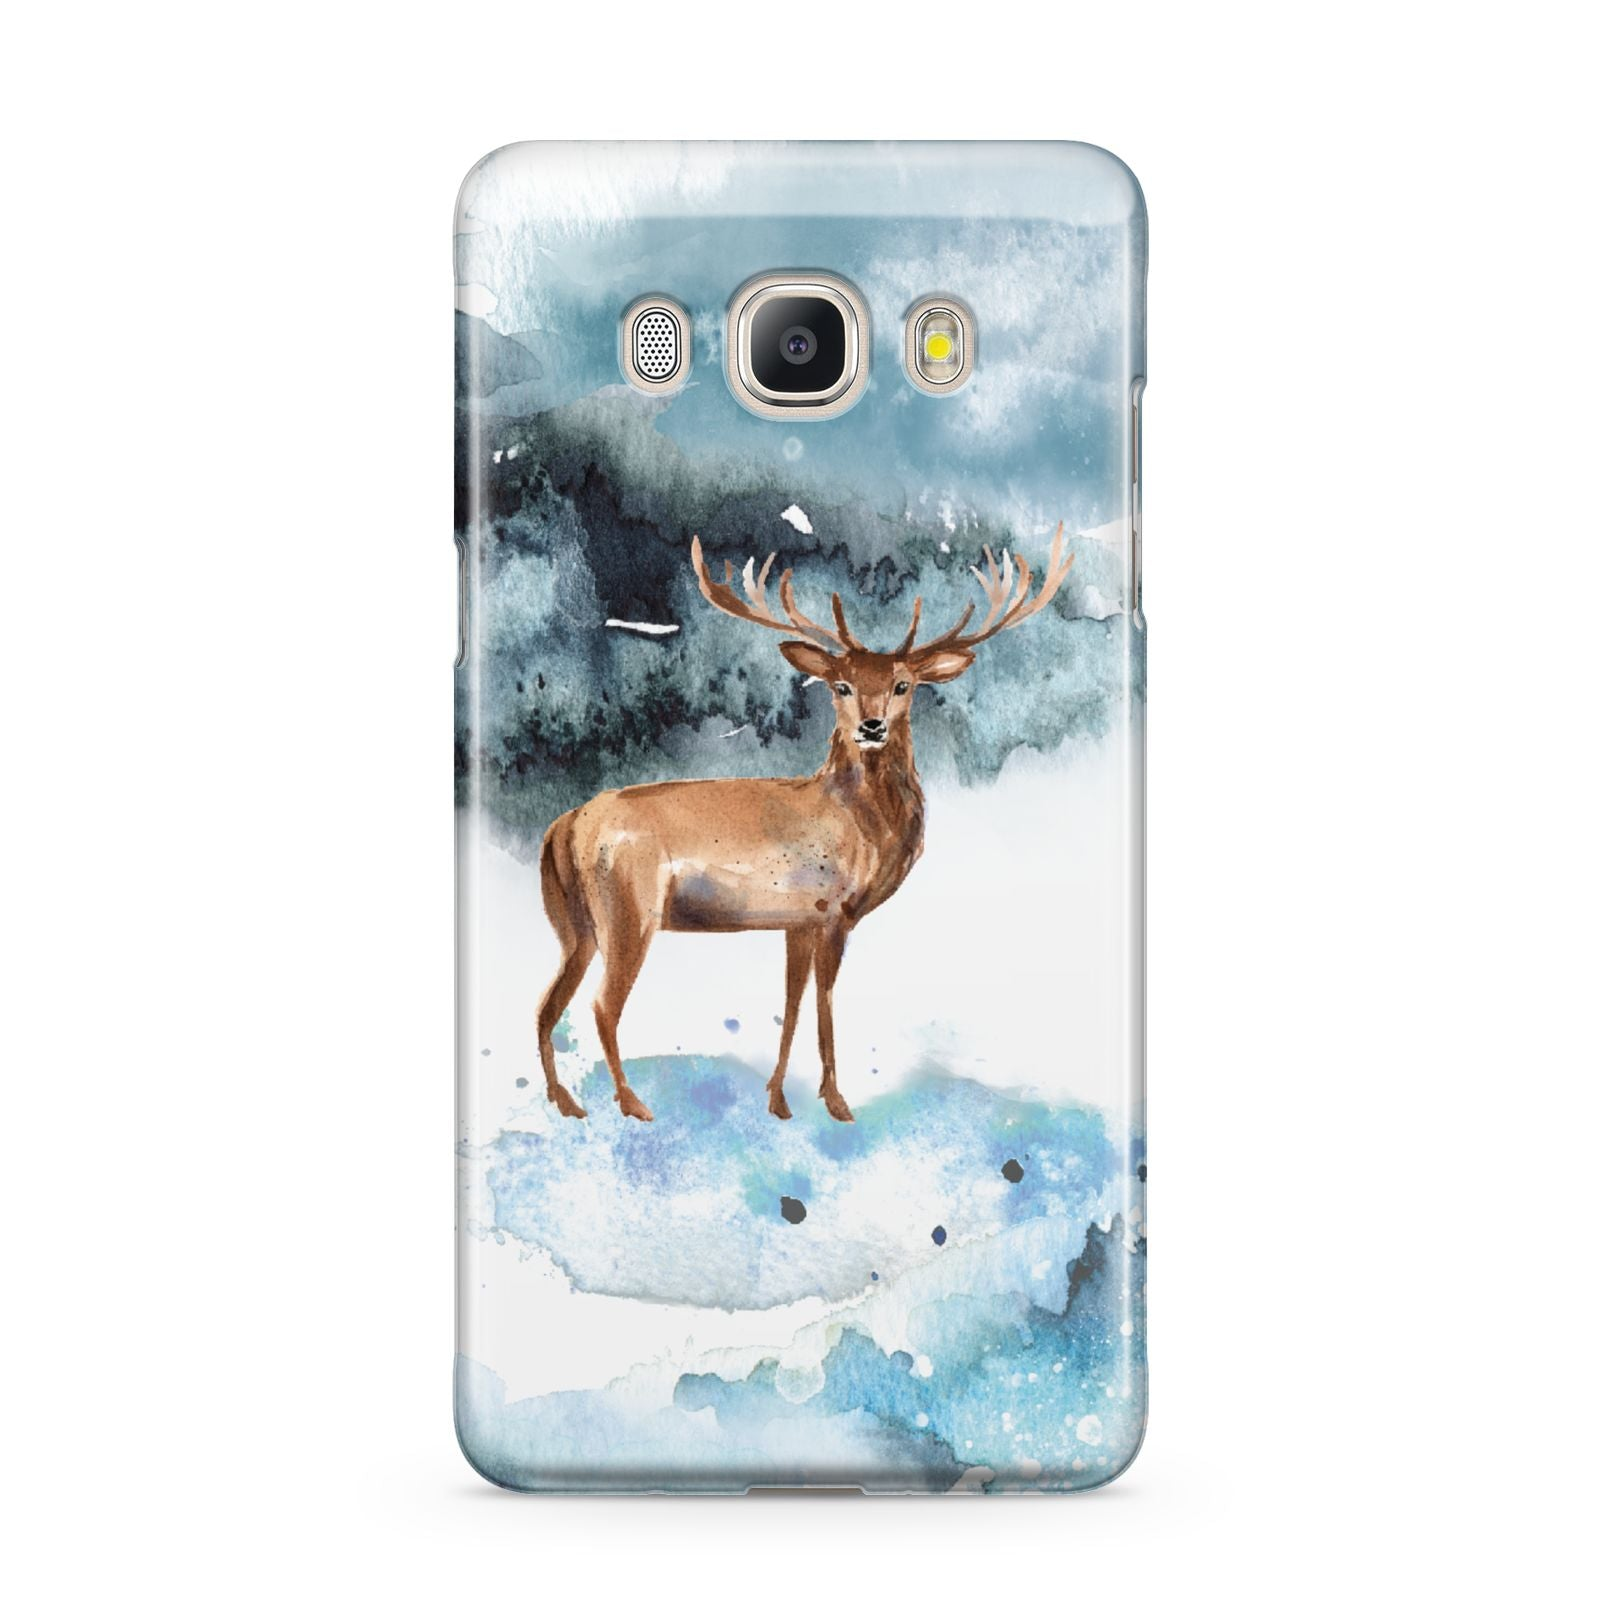 Christmas Winter Stag Samsung Galaxy J5 2016 Case